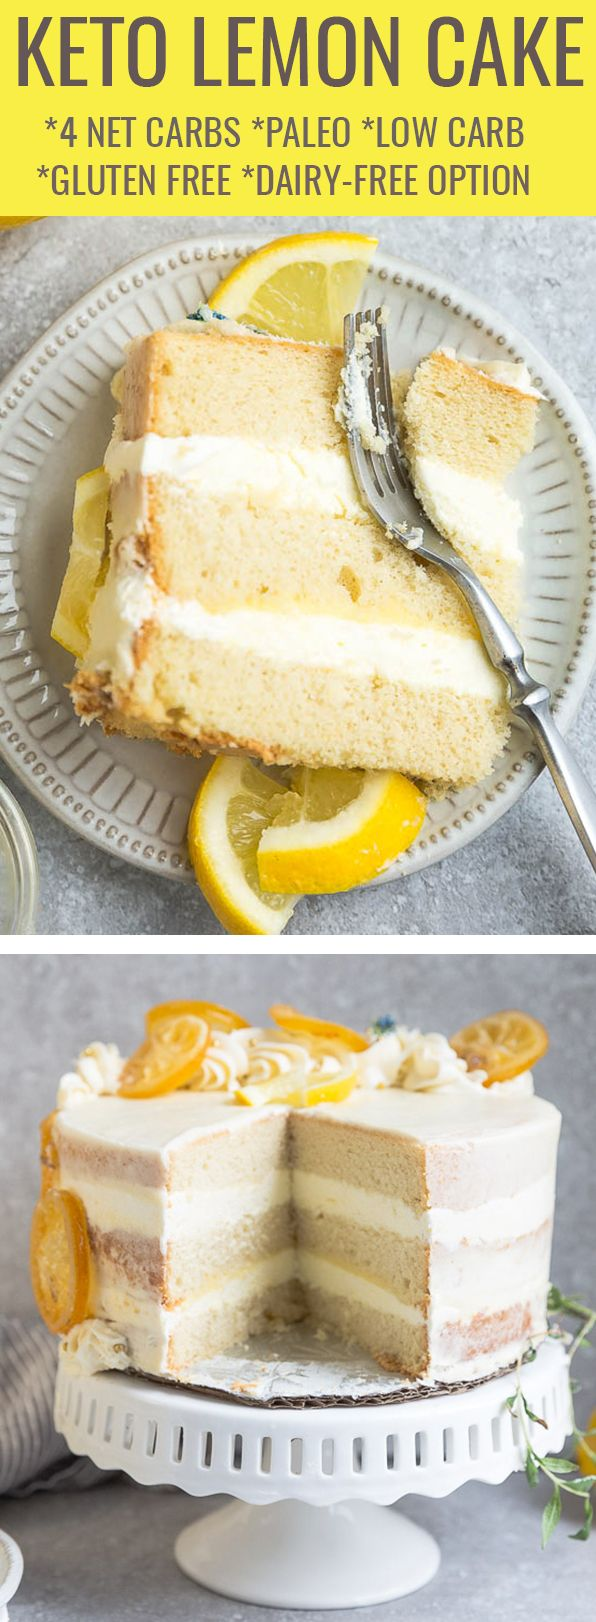 12 desserts For Parties cake ideas